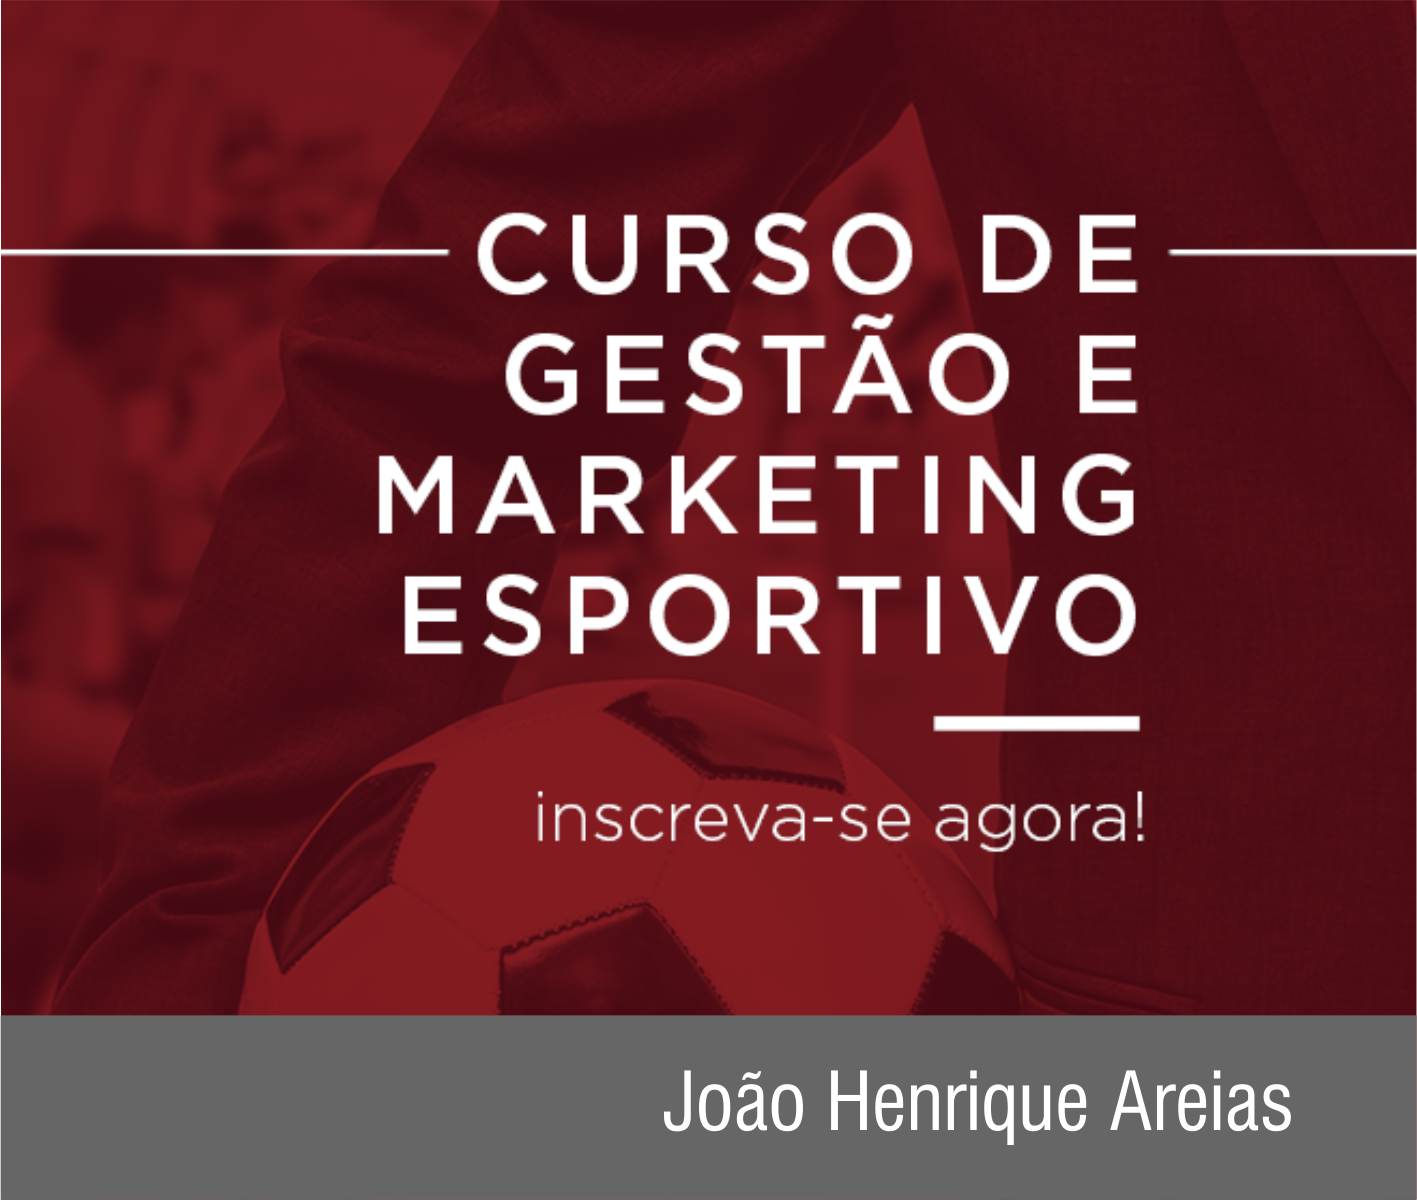 GESTÃO E MARKETING ESPORTIVO